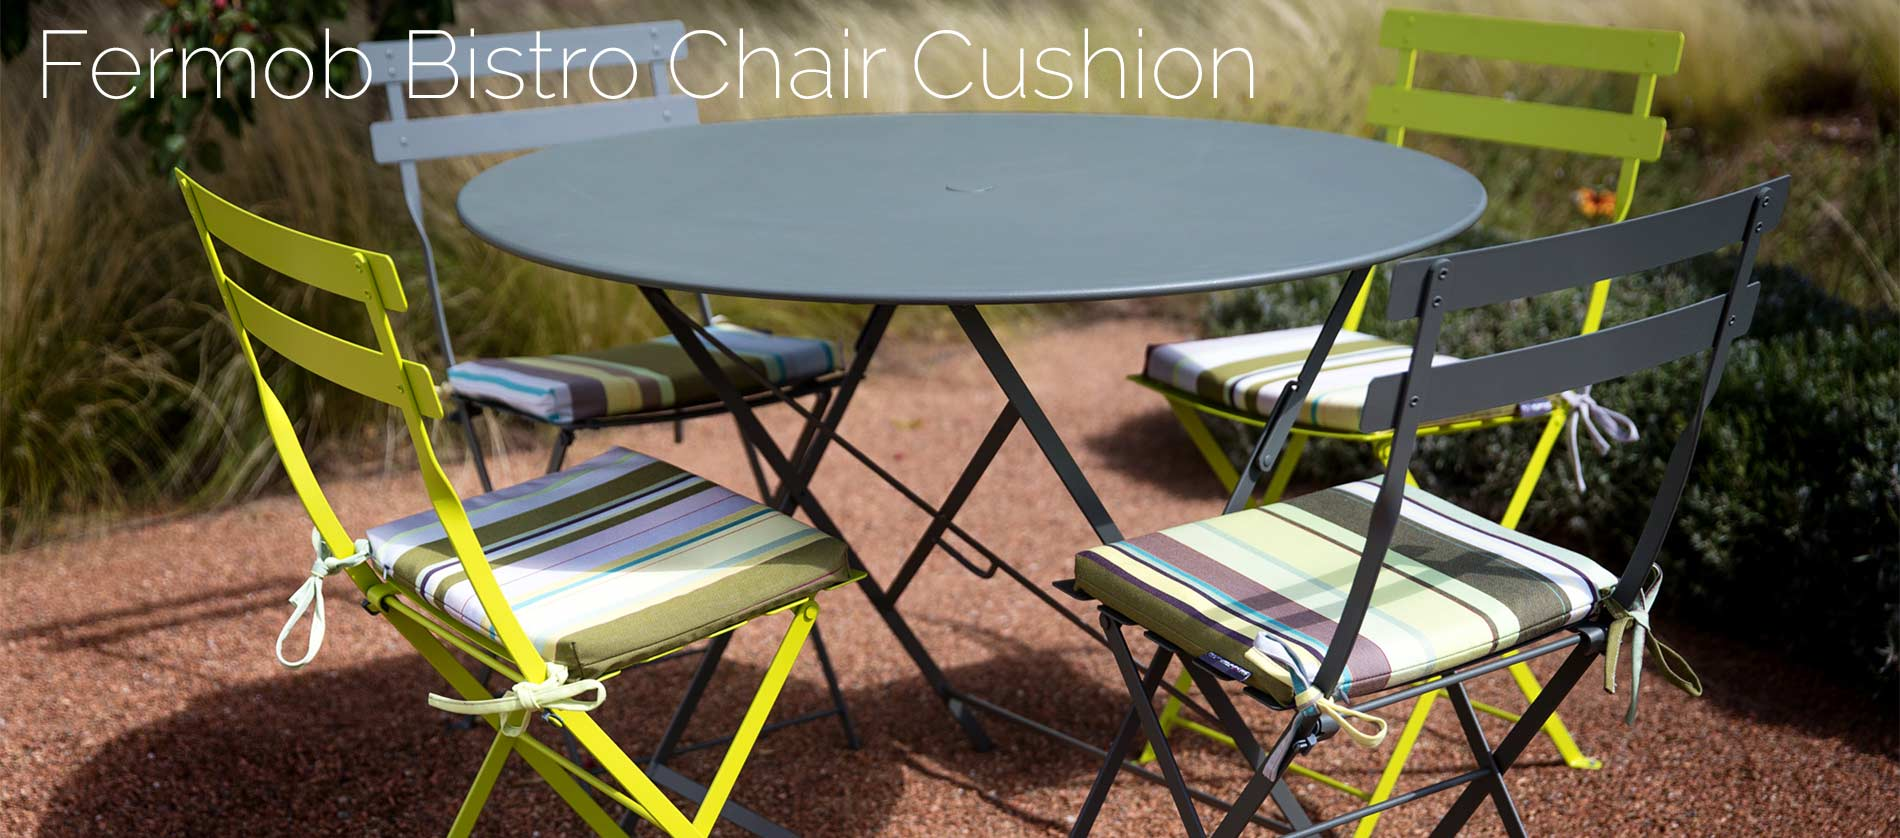 Bistro Chair Cushion For Fermob Bistro Chairs